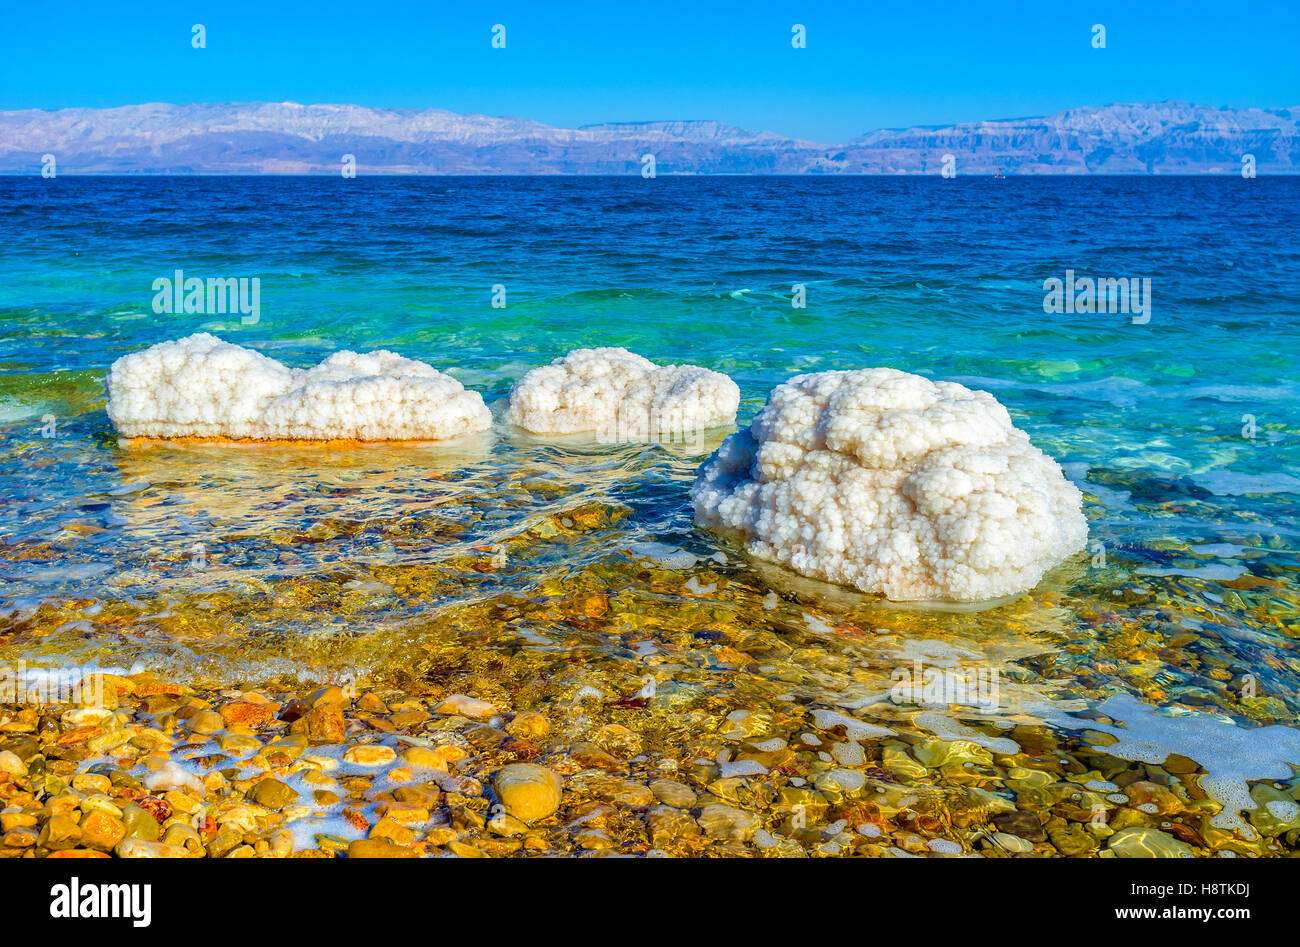 The Dead Sea is one of the world's saltiest bodies of water, creating unusual stones' covers, Ein Gedi, Israel. Stock Photo